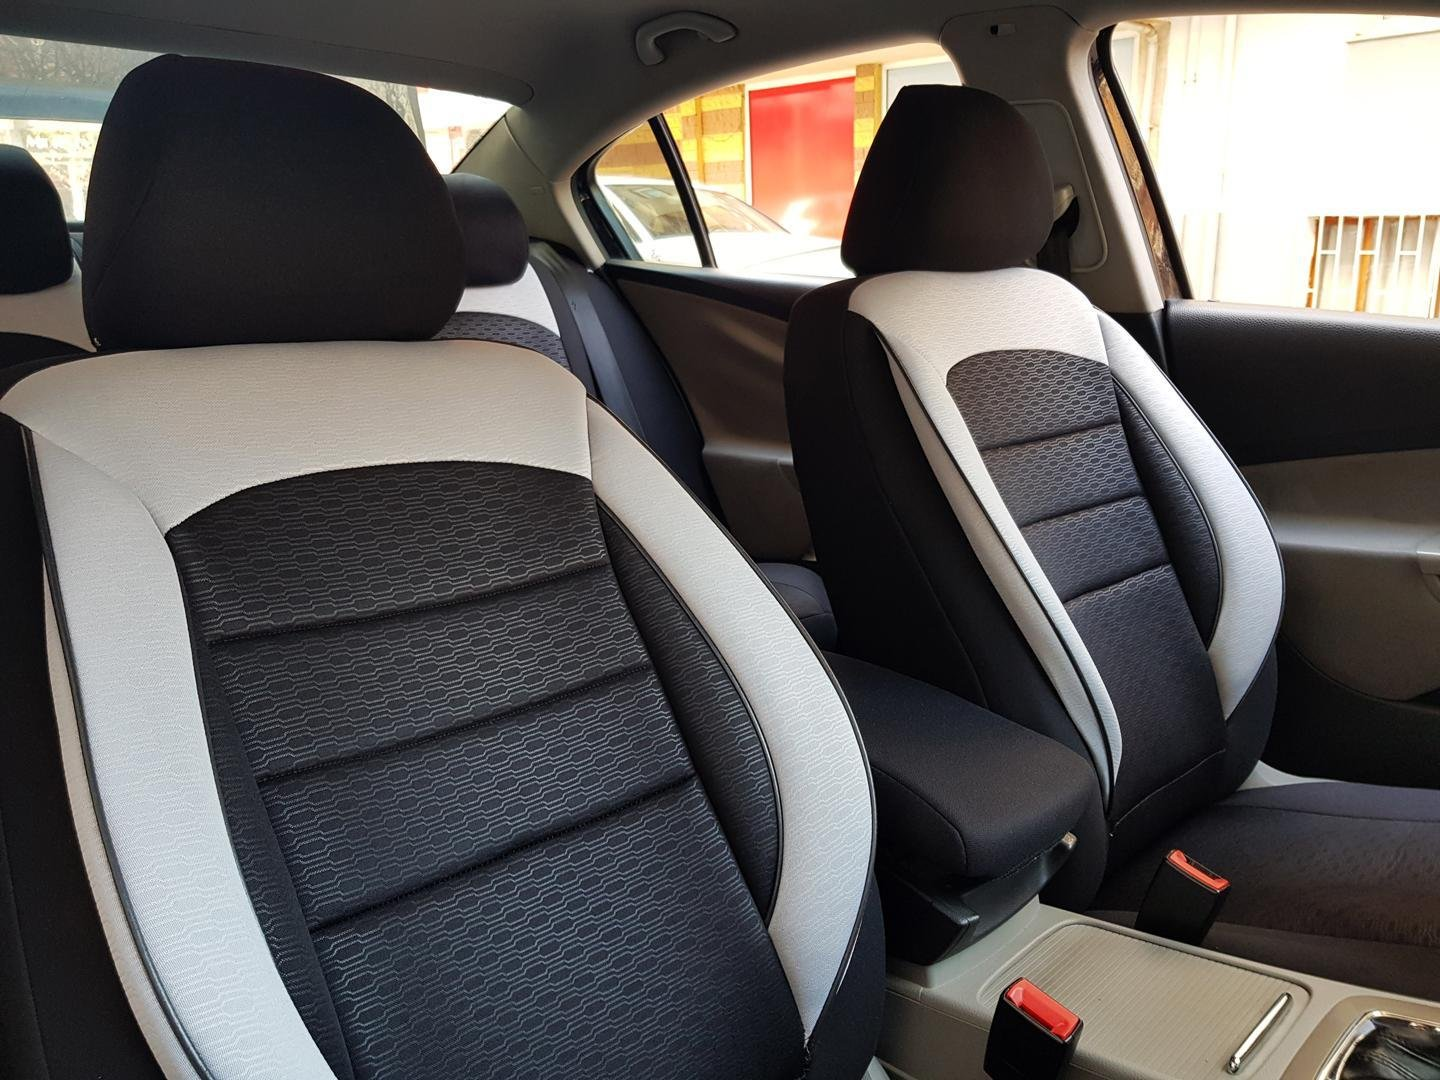 Car Seat Covers Protectors Land Rover Range Rover Ii Black White